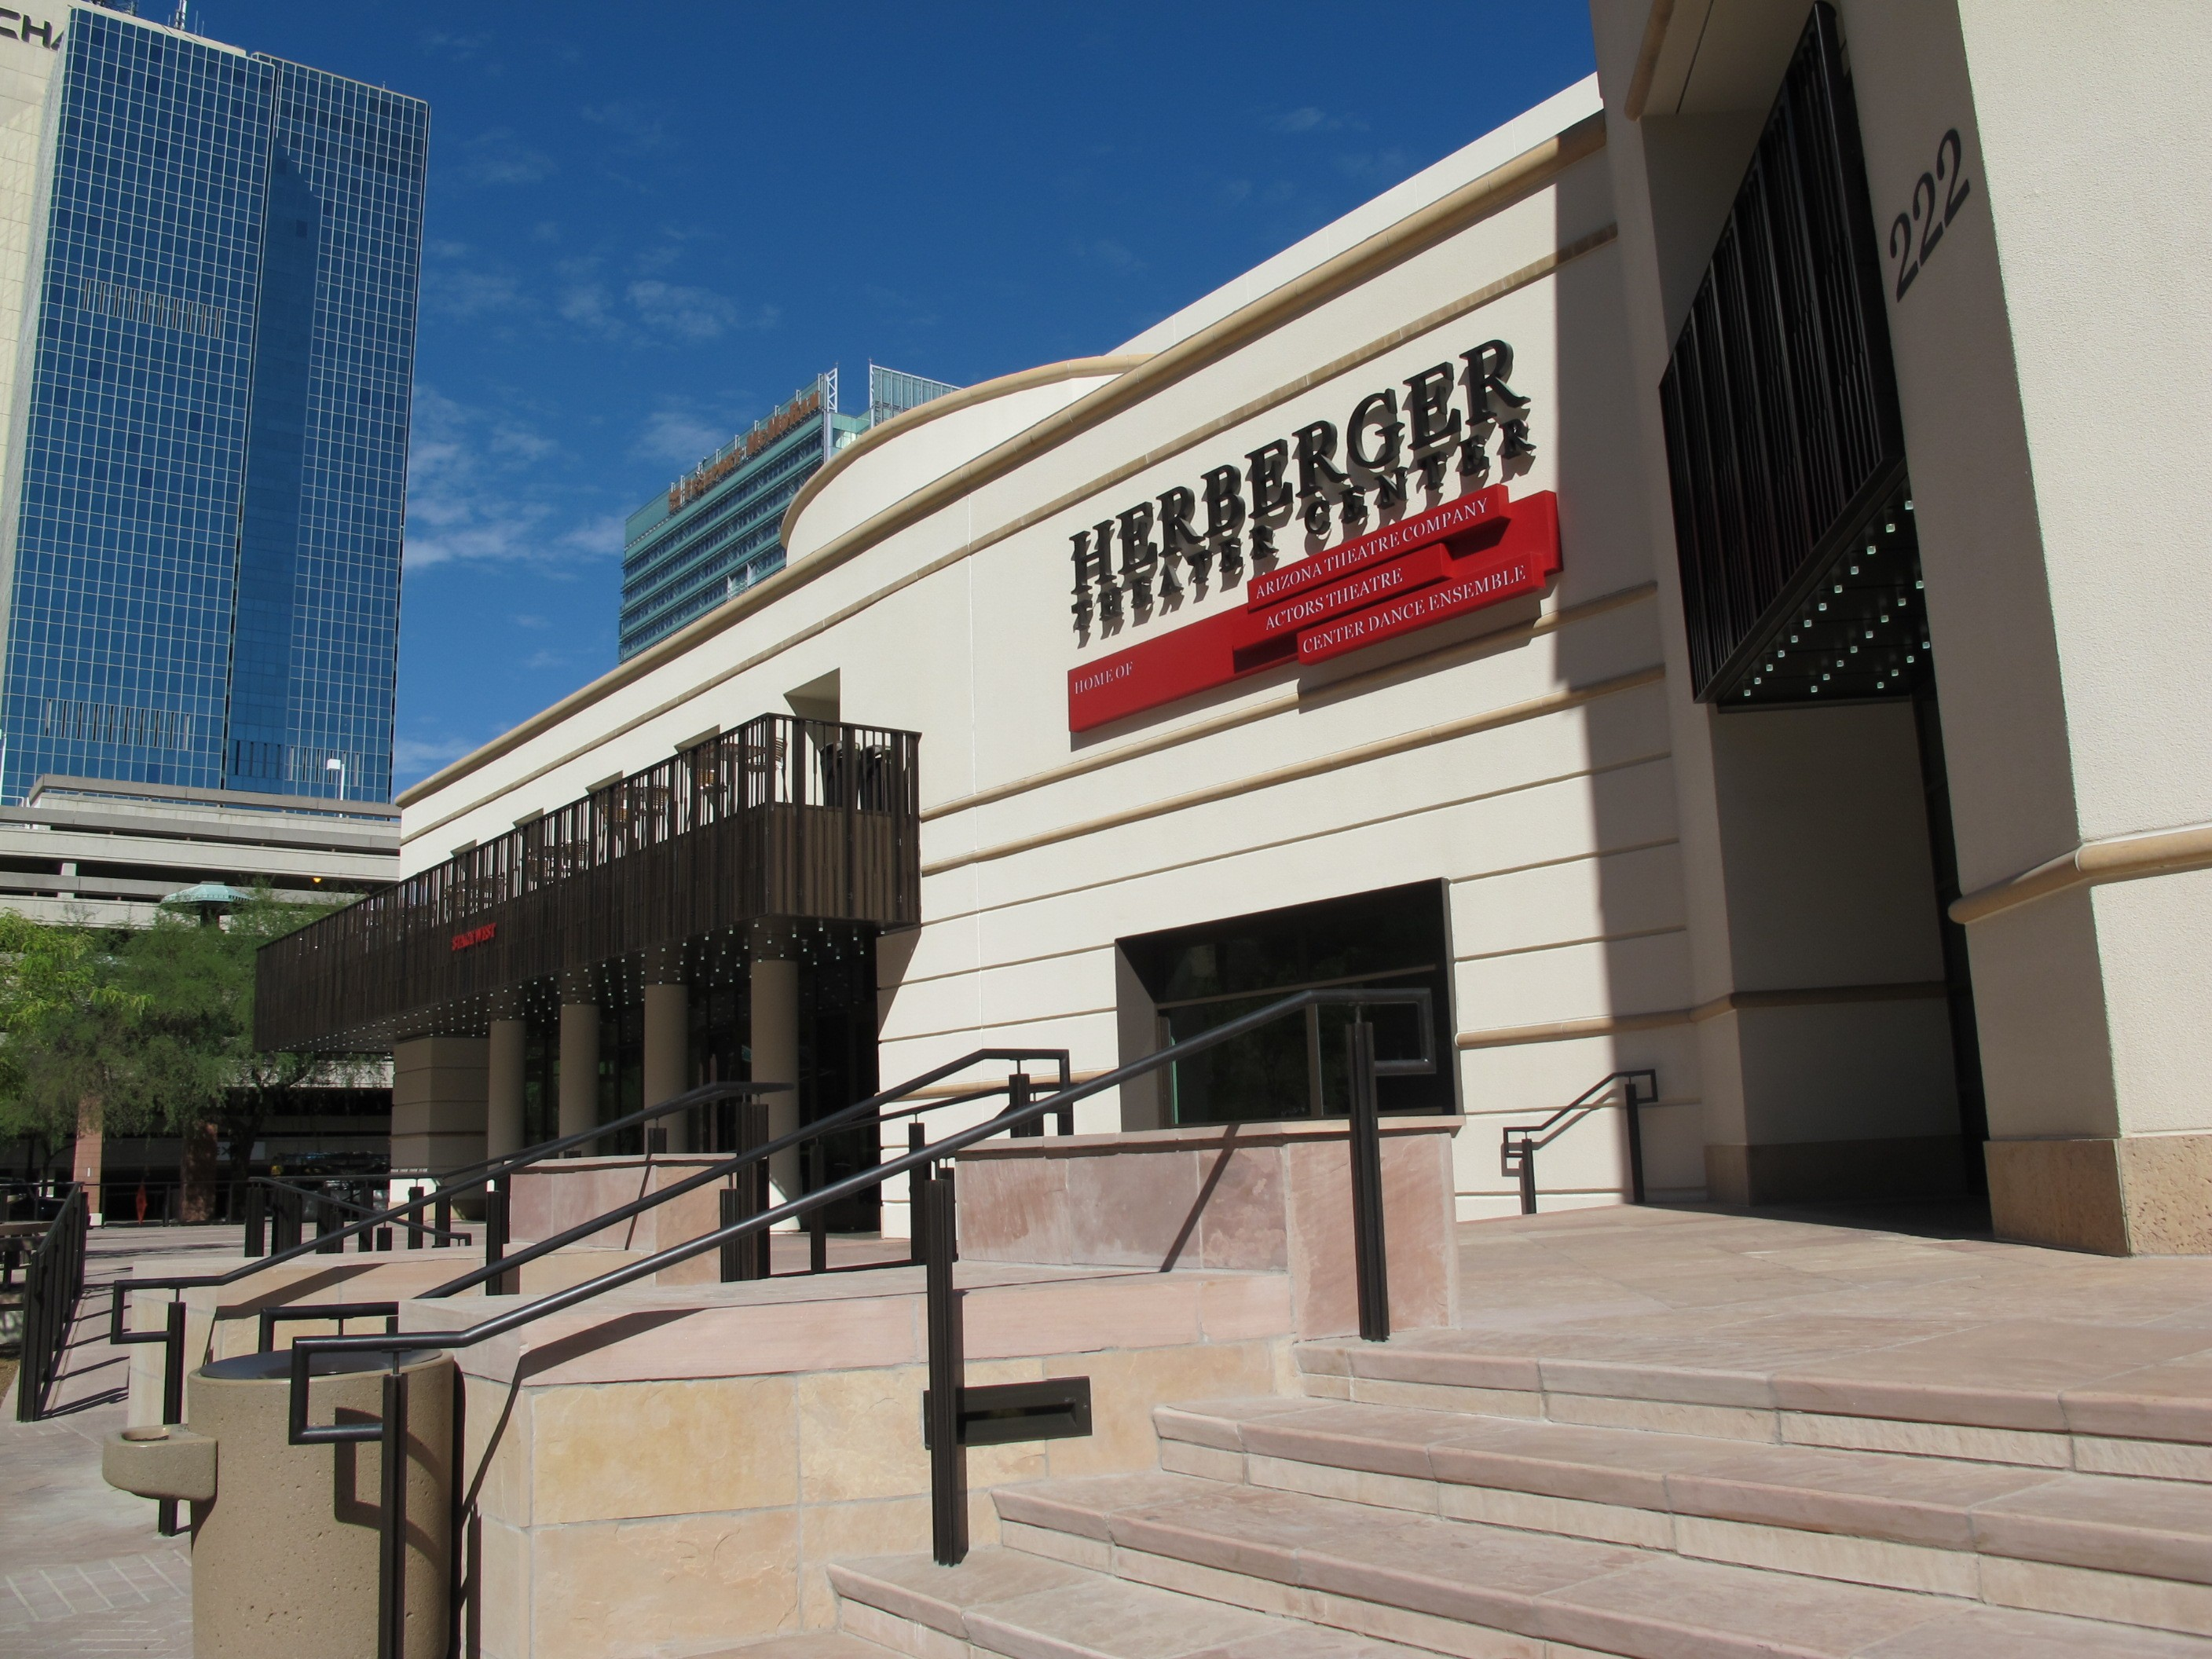 Actors Theatre of Phoenix becomes a resident company at the new Herberger Theater Center in Phoenix, along with Arizona Theatre Company and Center Dance Ensemble.